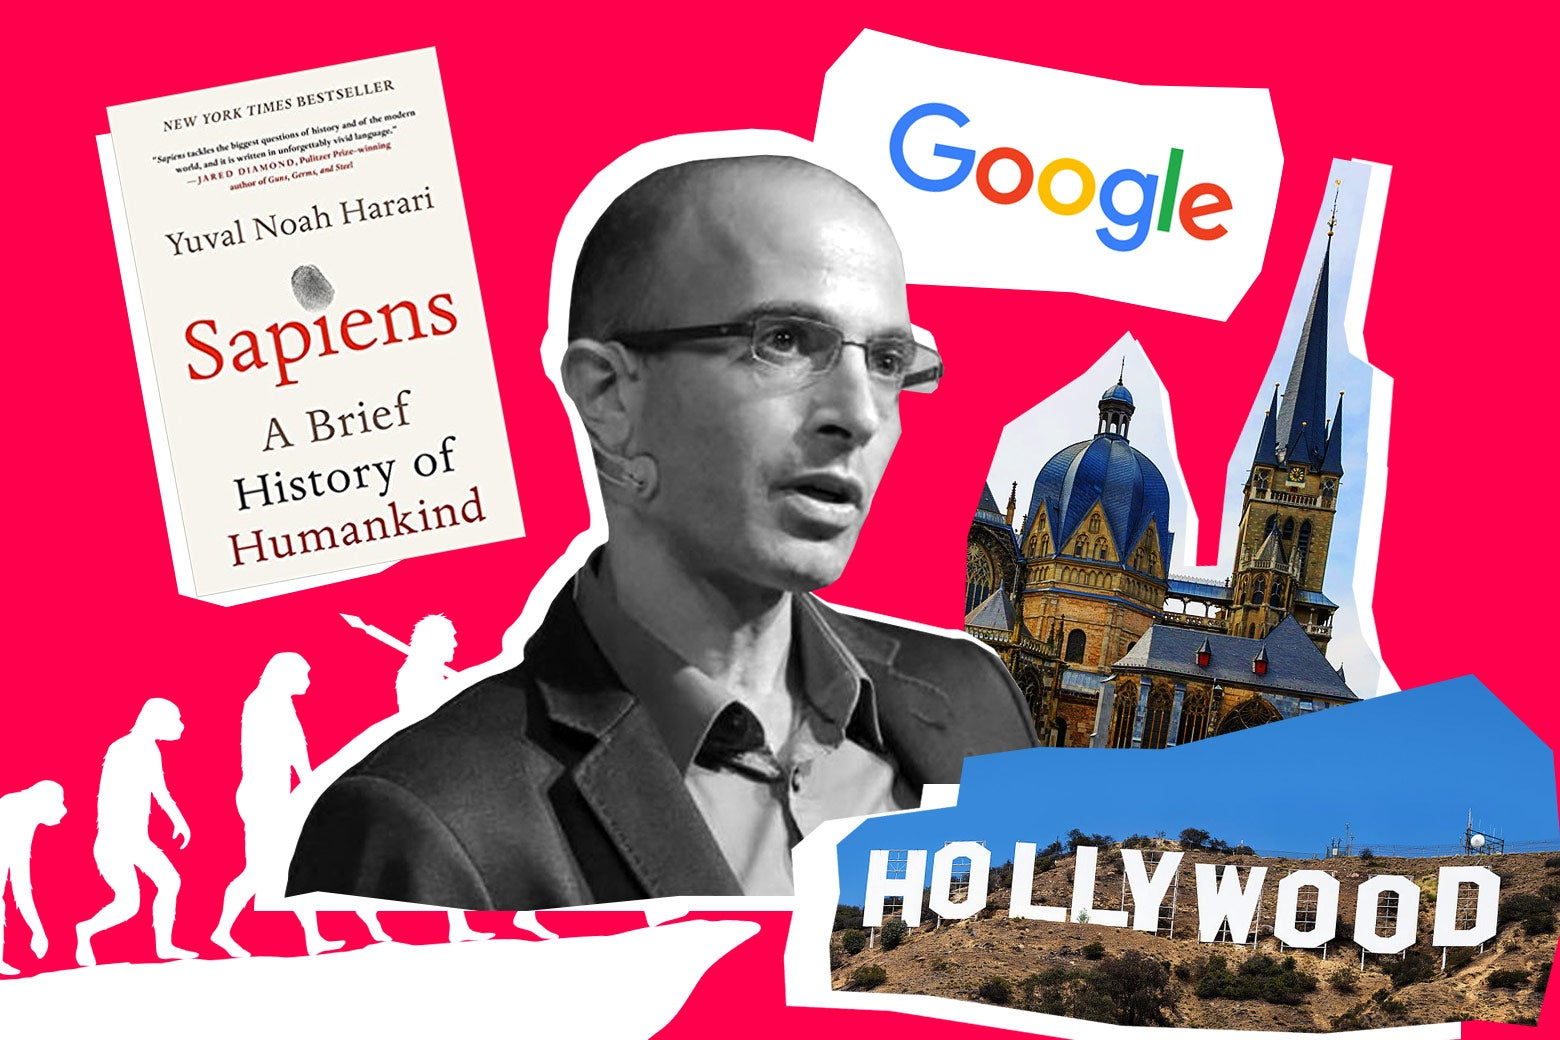 Yuval Noah Harari surrounded by a copy of his book Sapiens, the Google logo, the Hollywood sign, a cathedral, and the evolution of man drawing.